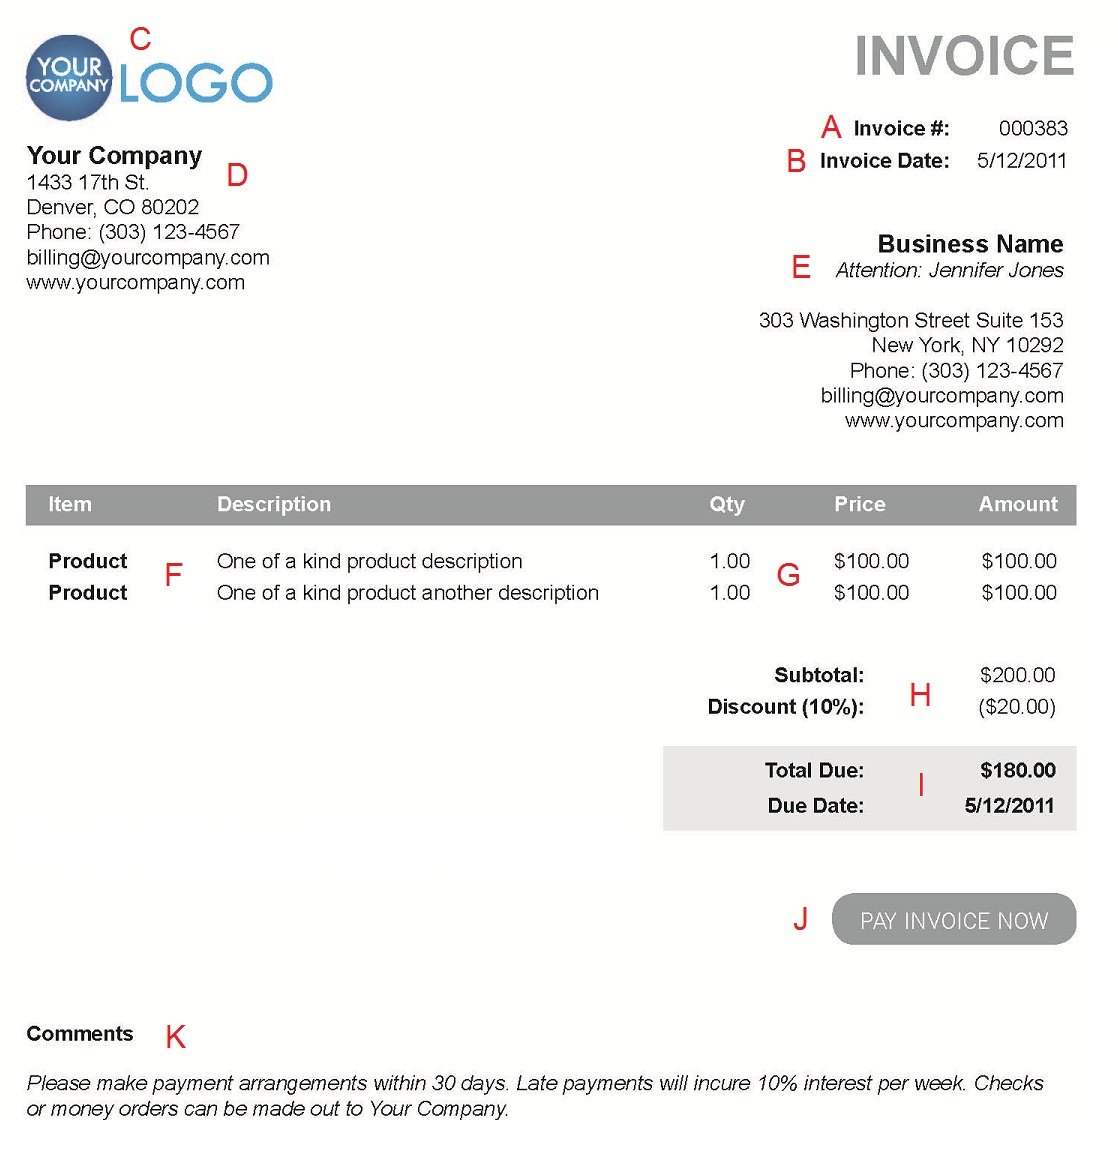 Amatospizzaus  Stunning The  Different Sections Of An Electronic Payment Invoice With Lovely A  With Delightful Gross Receipts Tax California Also Concur Receipts In Addition Return Policy Without Receipt And Service Receipt As Well As Receipt Means Additionally Irs Constructive Receipt From Paysimplecom With Amatospizzaus  Lovely The  Different Sections Of An Electronic Payment Invoice With Delightful A  And Stunning Gross Receipts Tax California Also Concur Receipts In Addition Return Policy Without Receipt From Paysimplecom